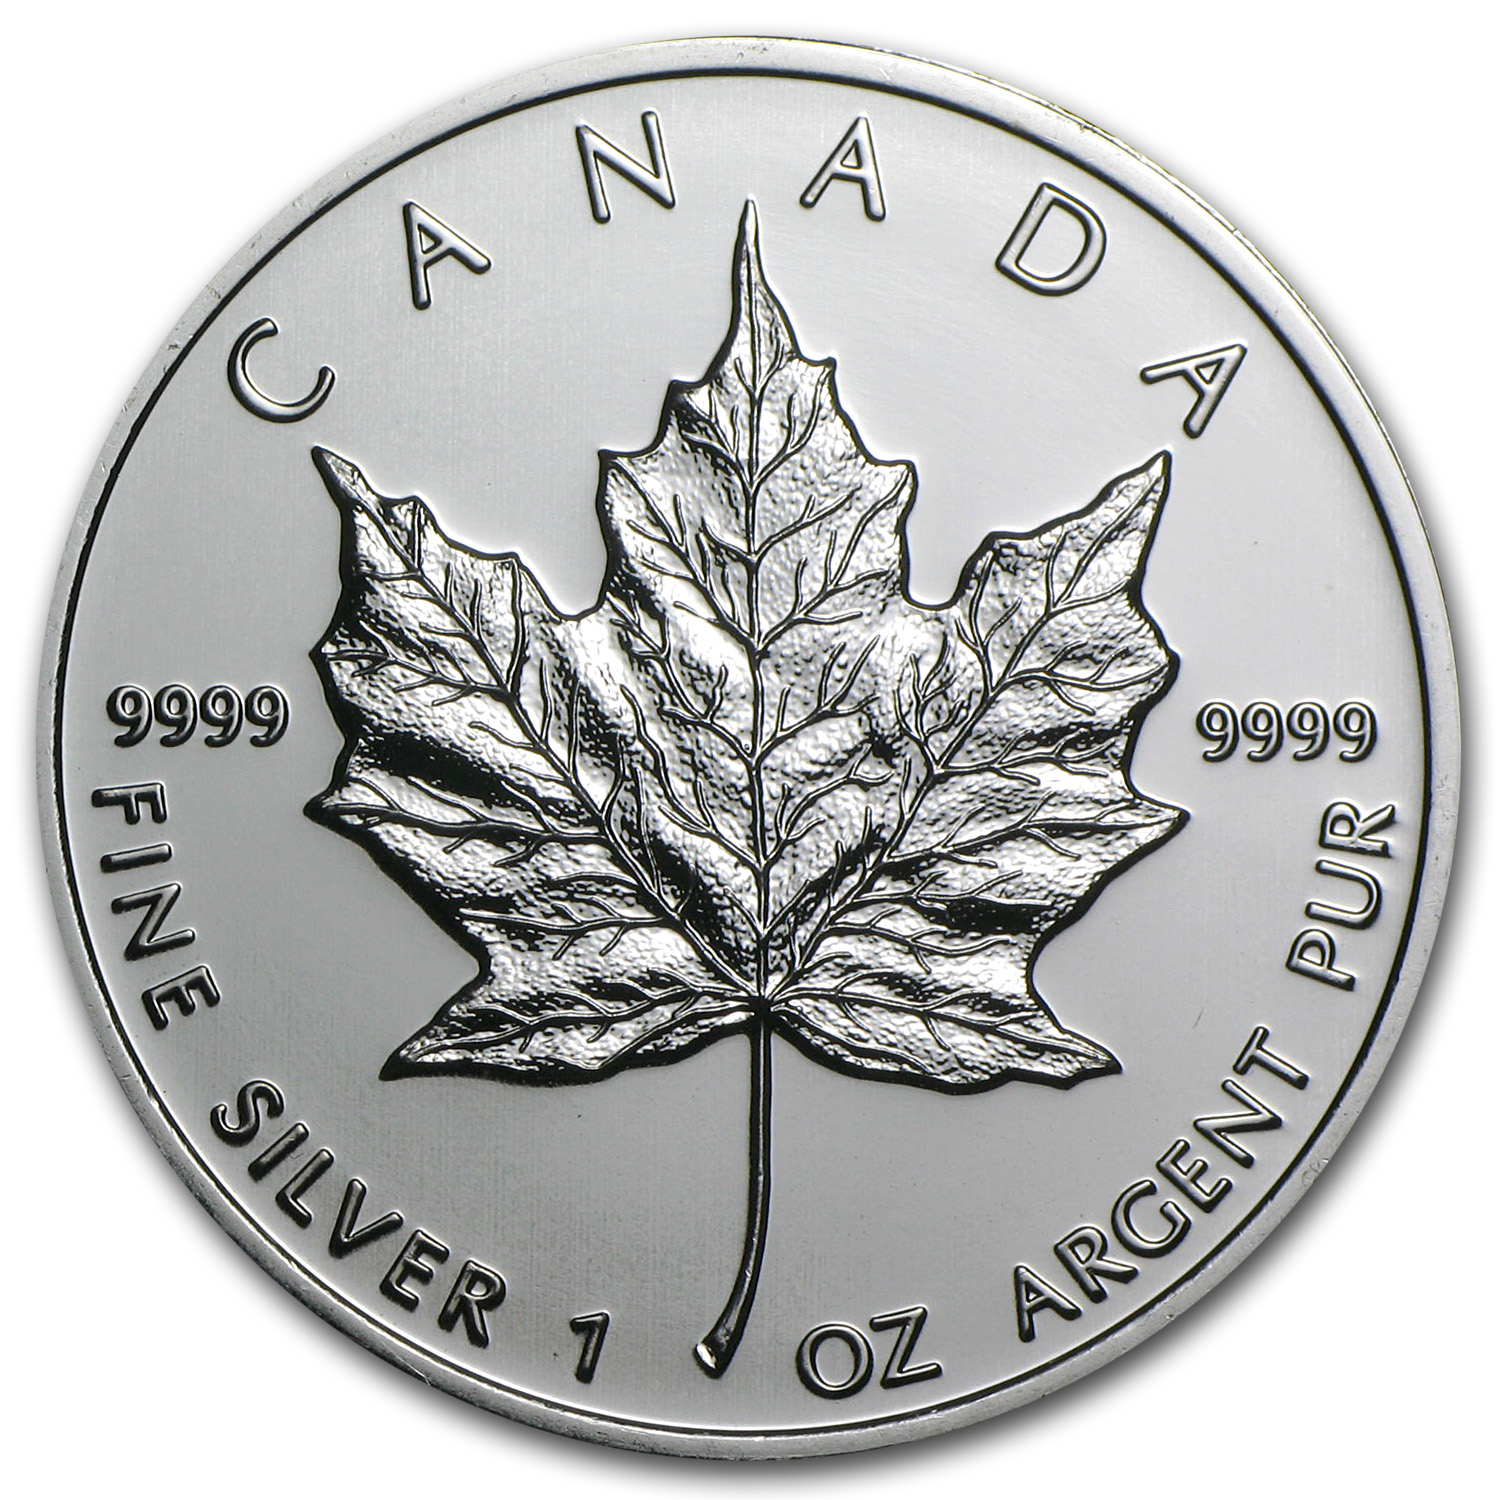 2009 Canada 1 oz Silver Maple Leaf BU